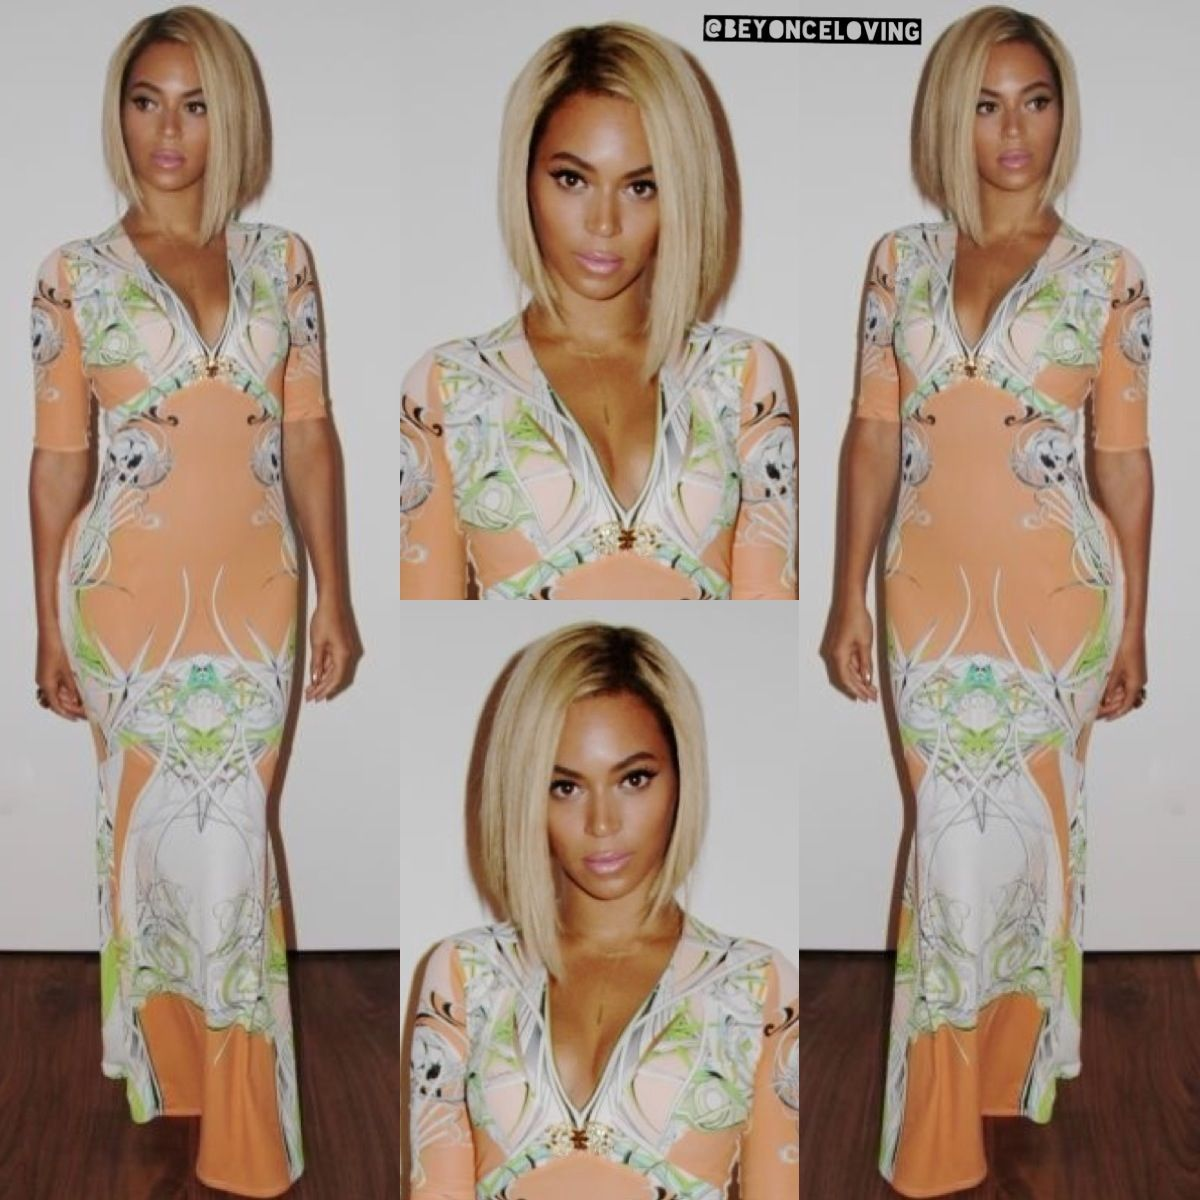 Beyoncethis bob sew in on her is everything curl up u dye